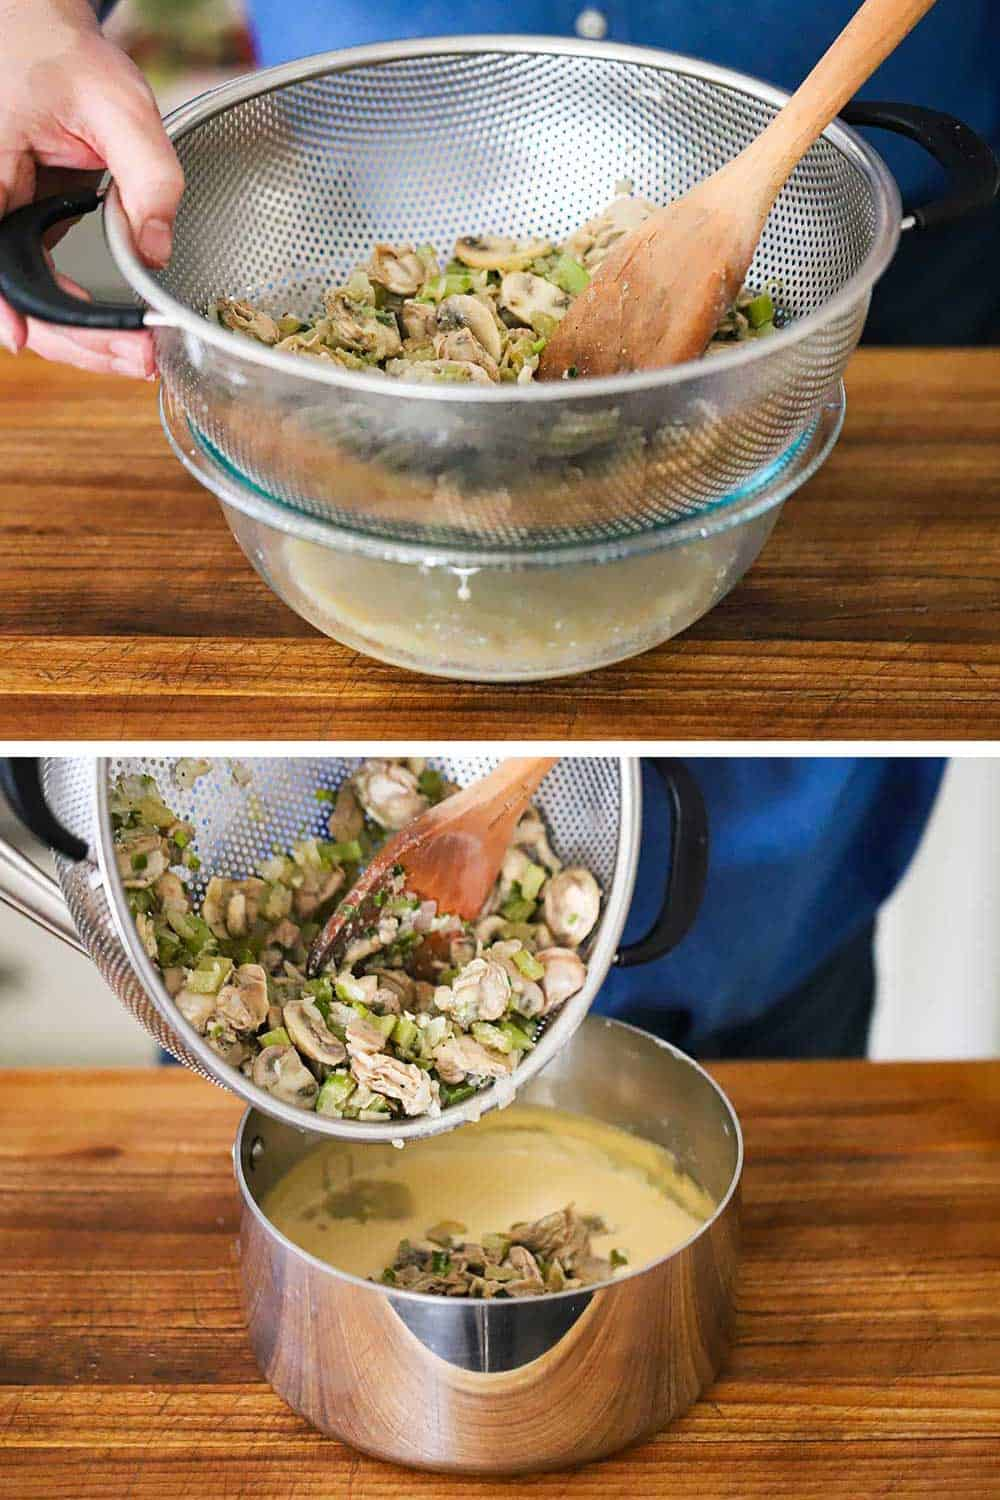 A person draining cooked oysters and mushrooms into a colander over a glass bowl and then transferring them into a saucepan filled with béchamel sauce.